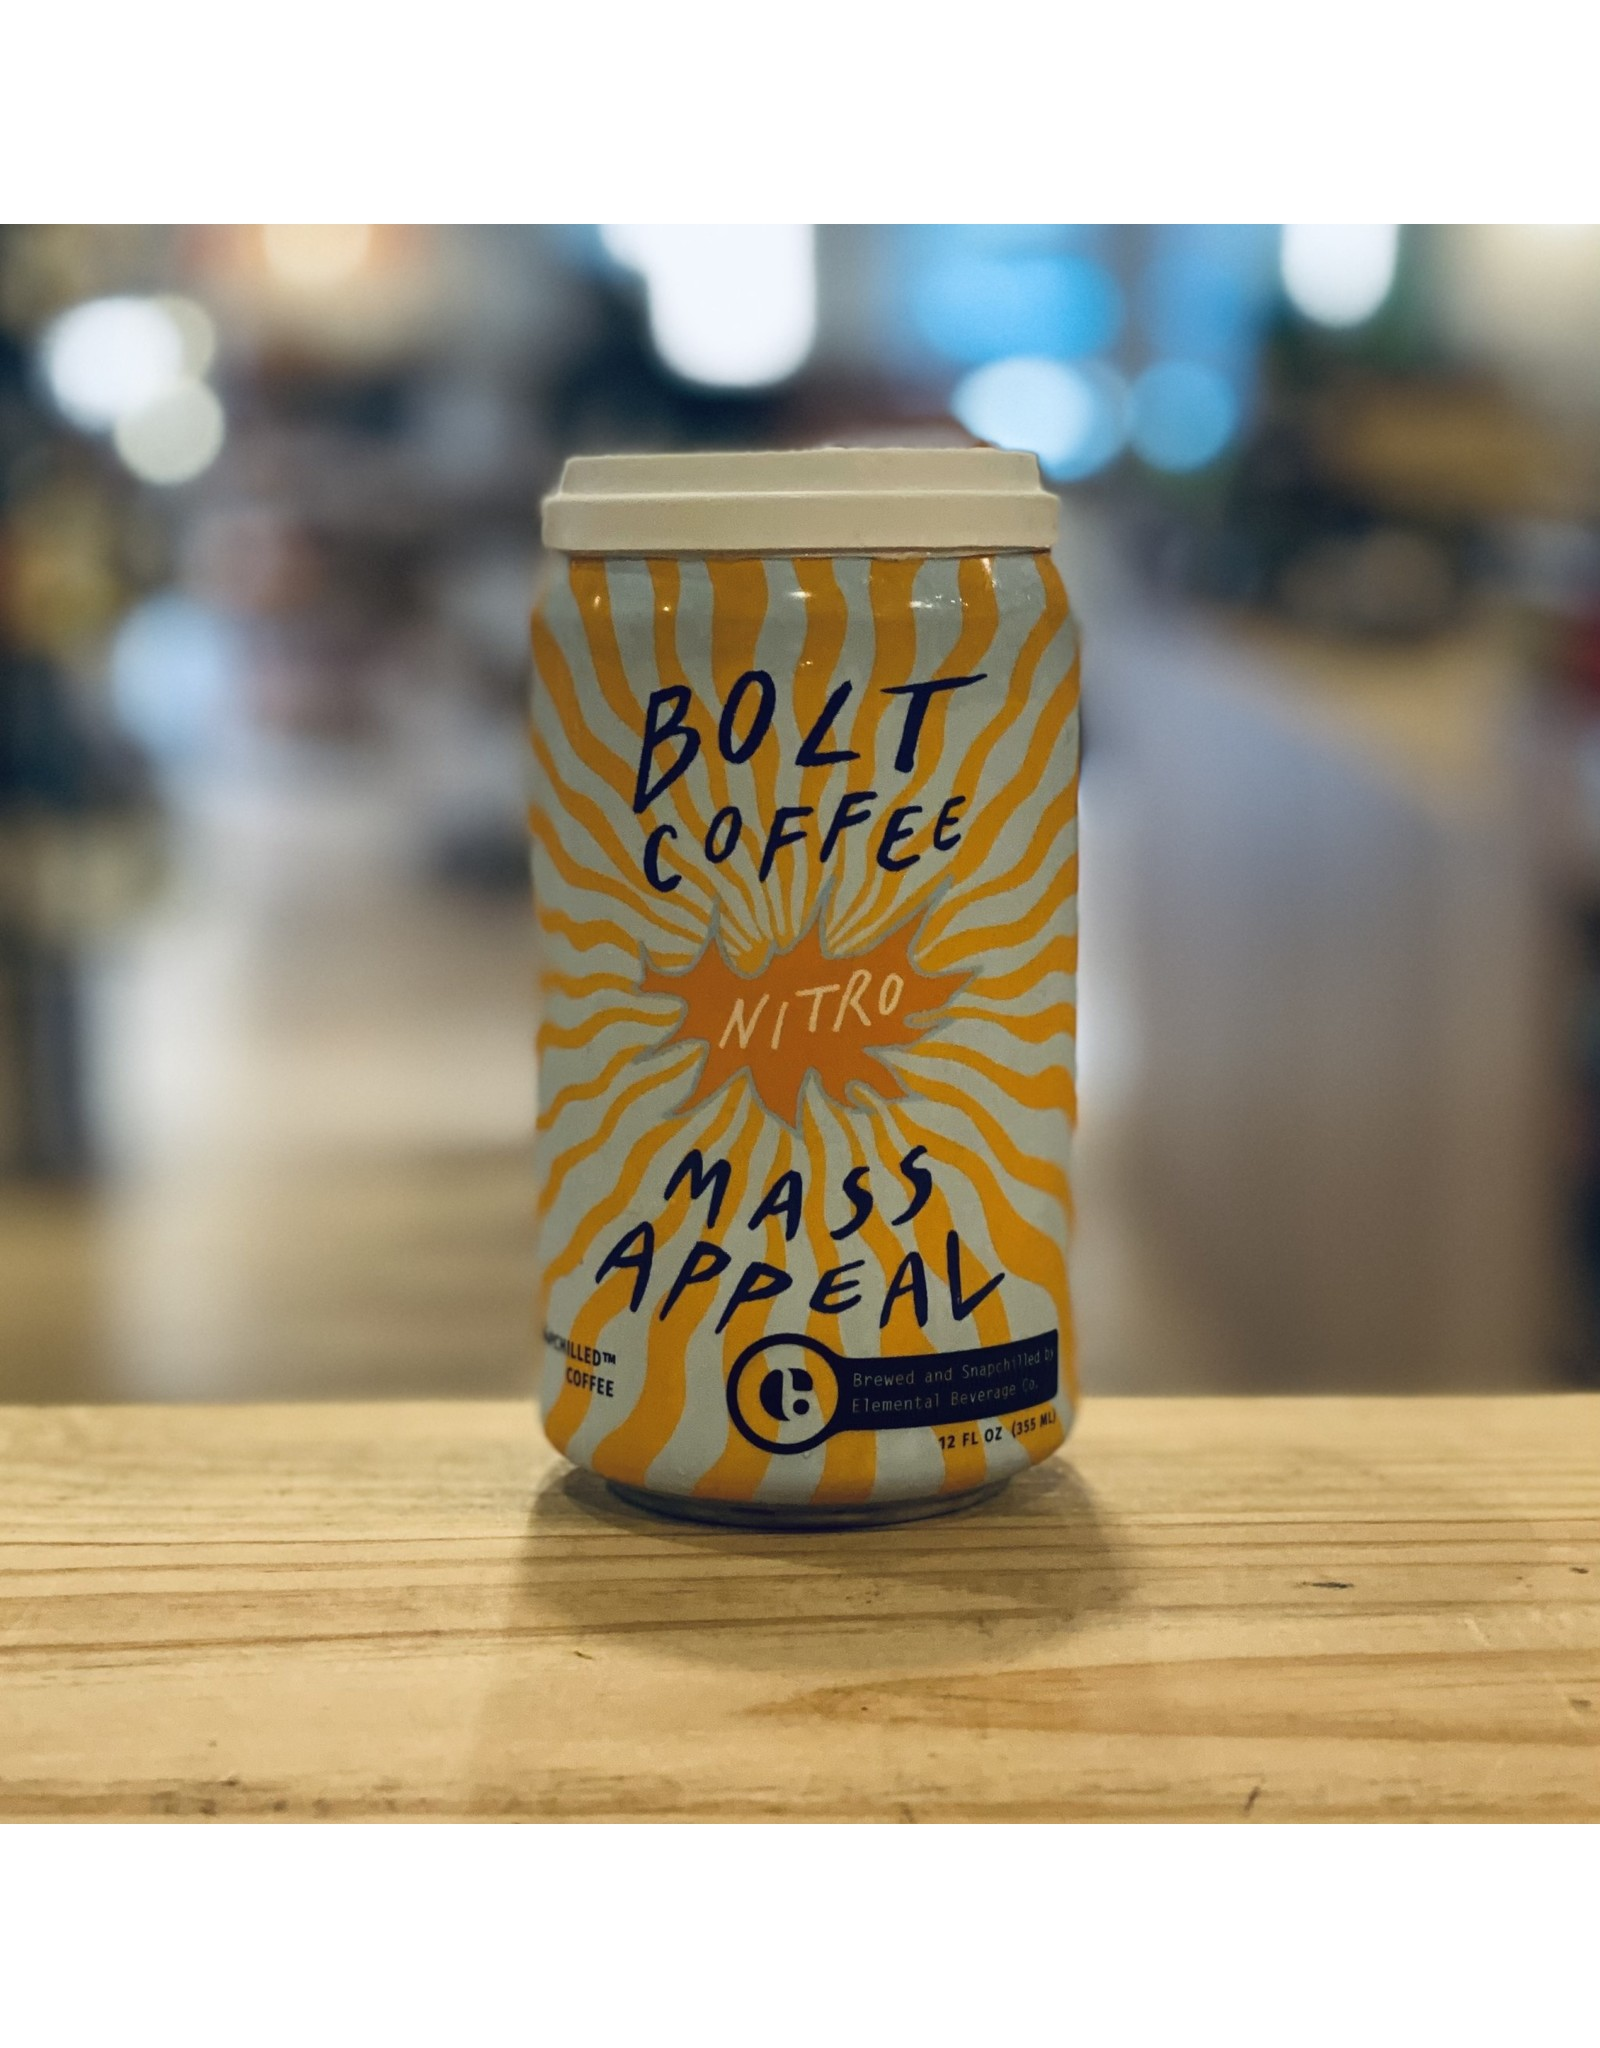 """Coffee Elemental Beverage and Bolt Coffee Co """"Mass Appeal"""" Nitro Snapchilled Coffee 12oz Can - Watertown, MA"""